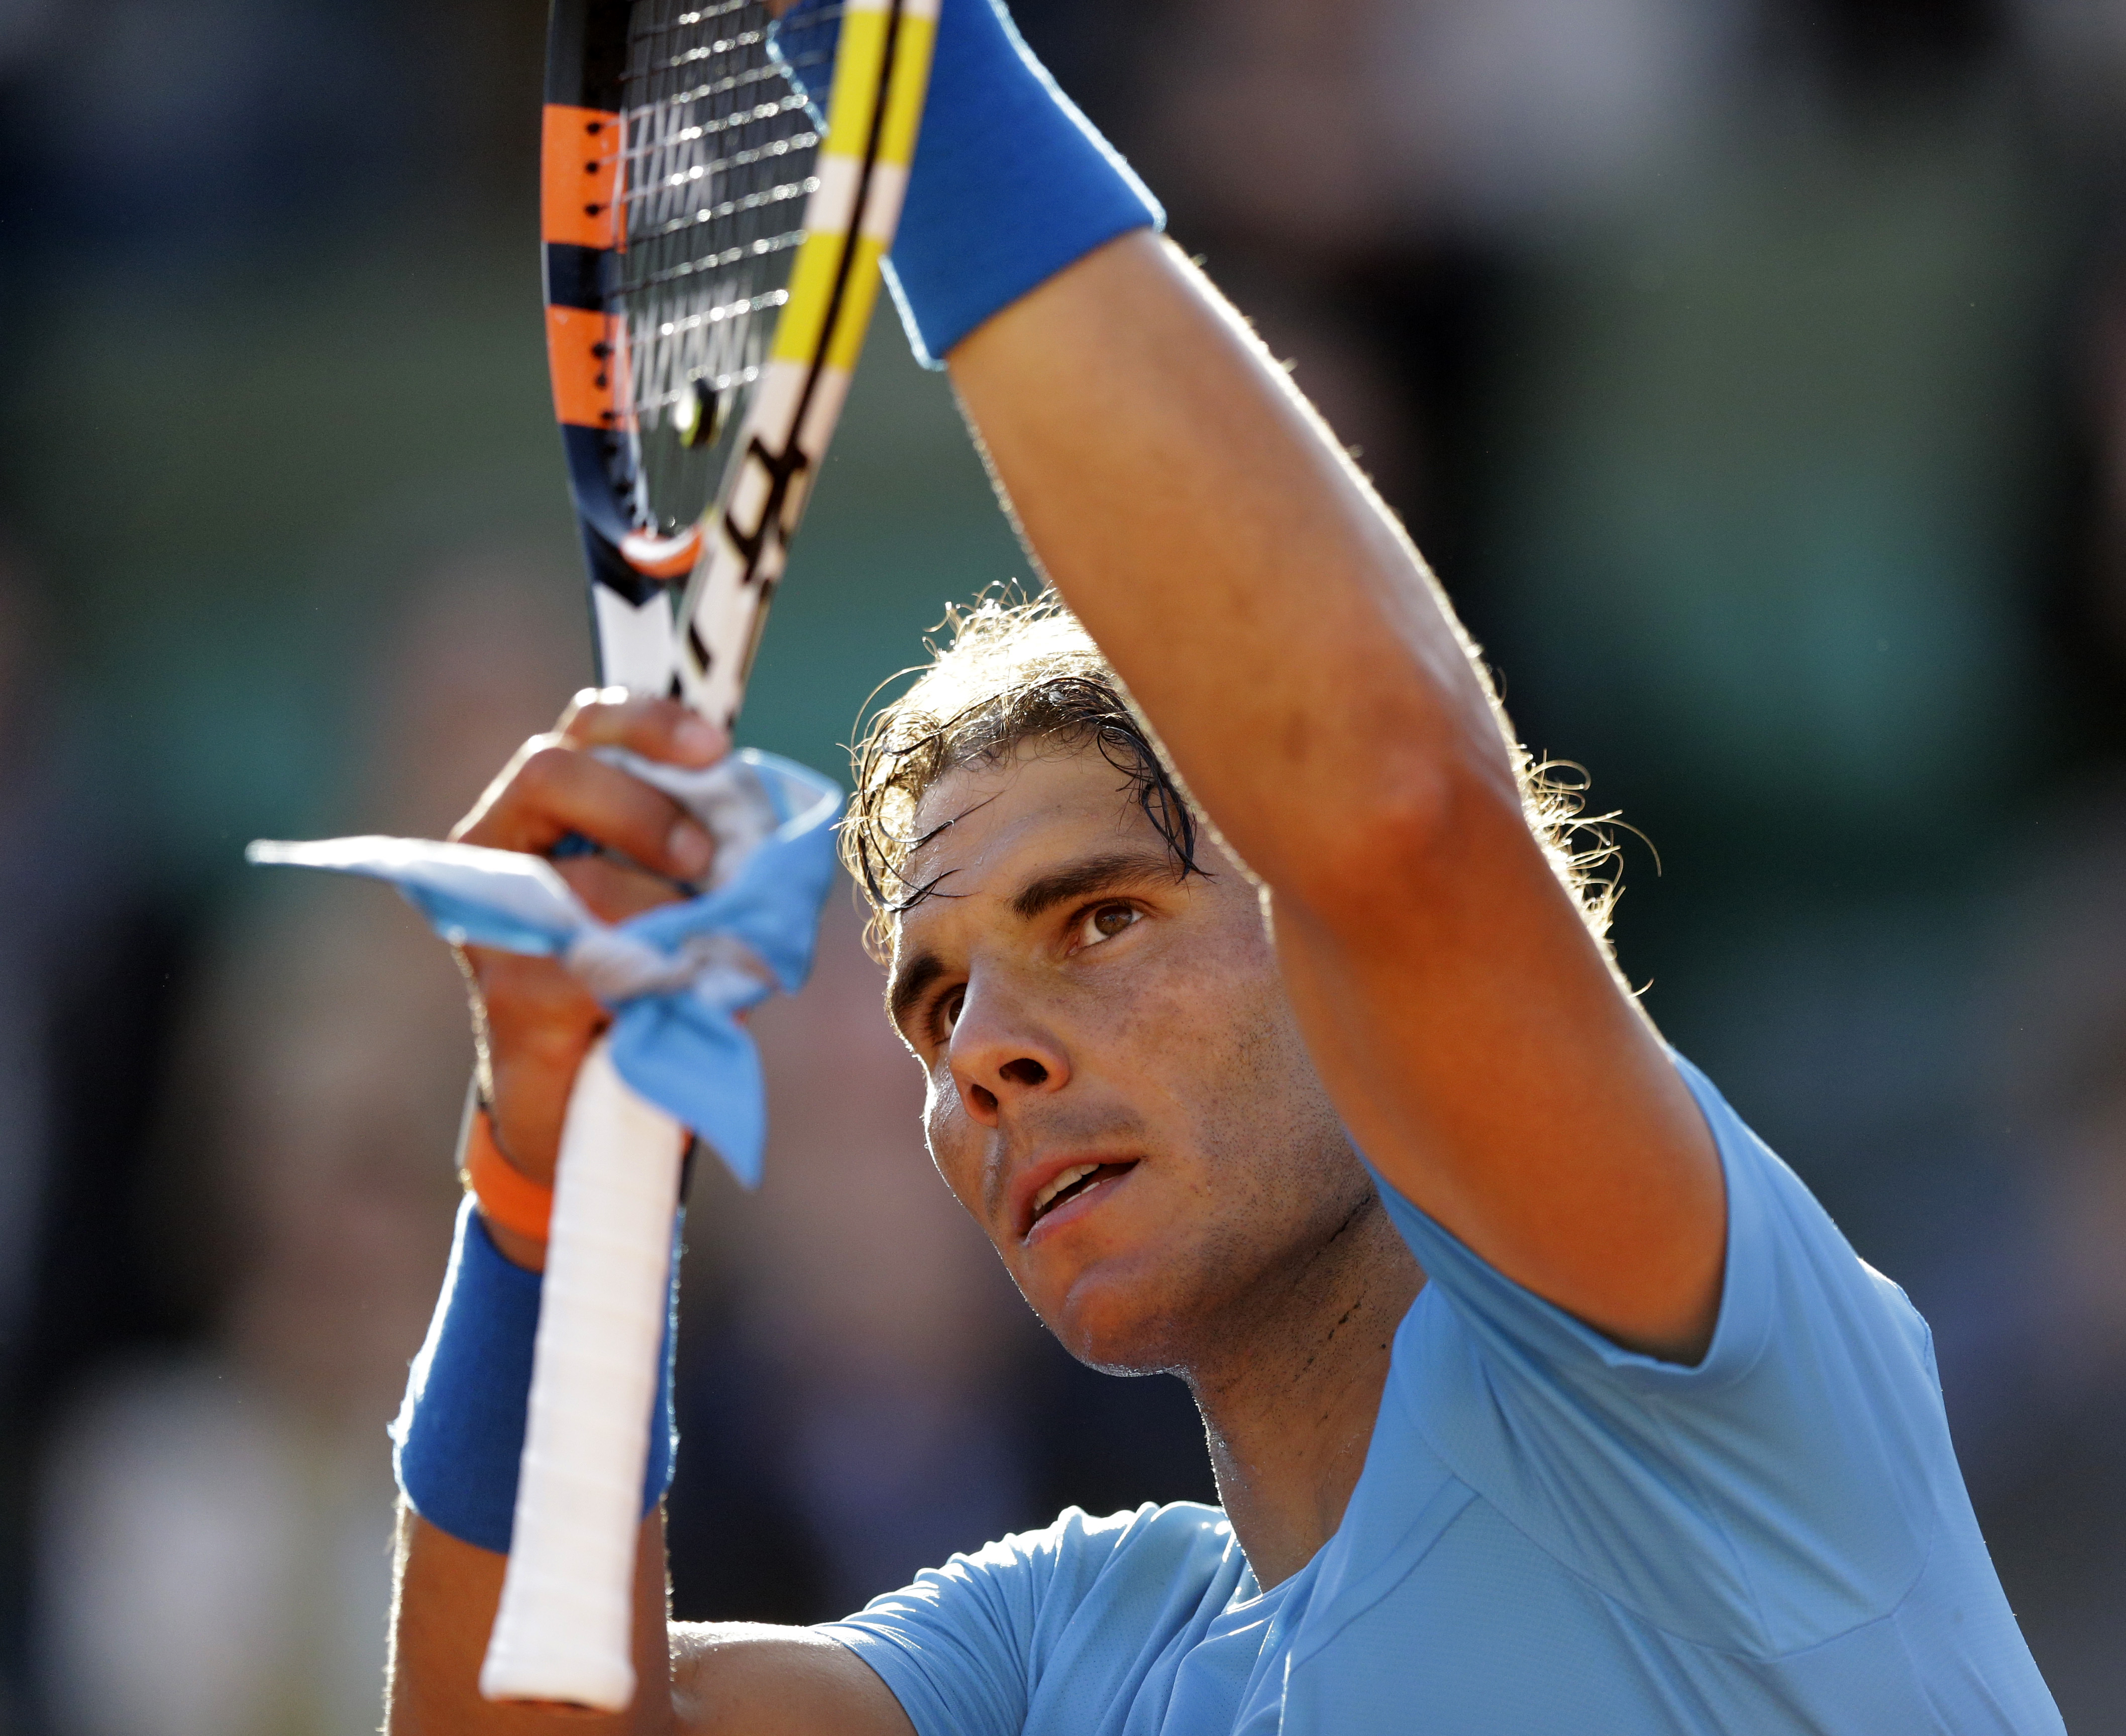 Spain's Rafael Nadal celebrates winning the fourth round match of the French Open tennis tournament against Jack Sock of the U.S. in four sets 6-3, 6-1, 5-7, 6-2, at the Roland Garros stadium, in Paris, France, Monday, June 1, 2015. (AP Photo/Thibault Cam